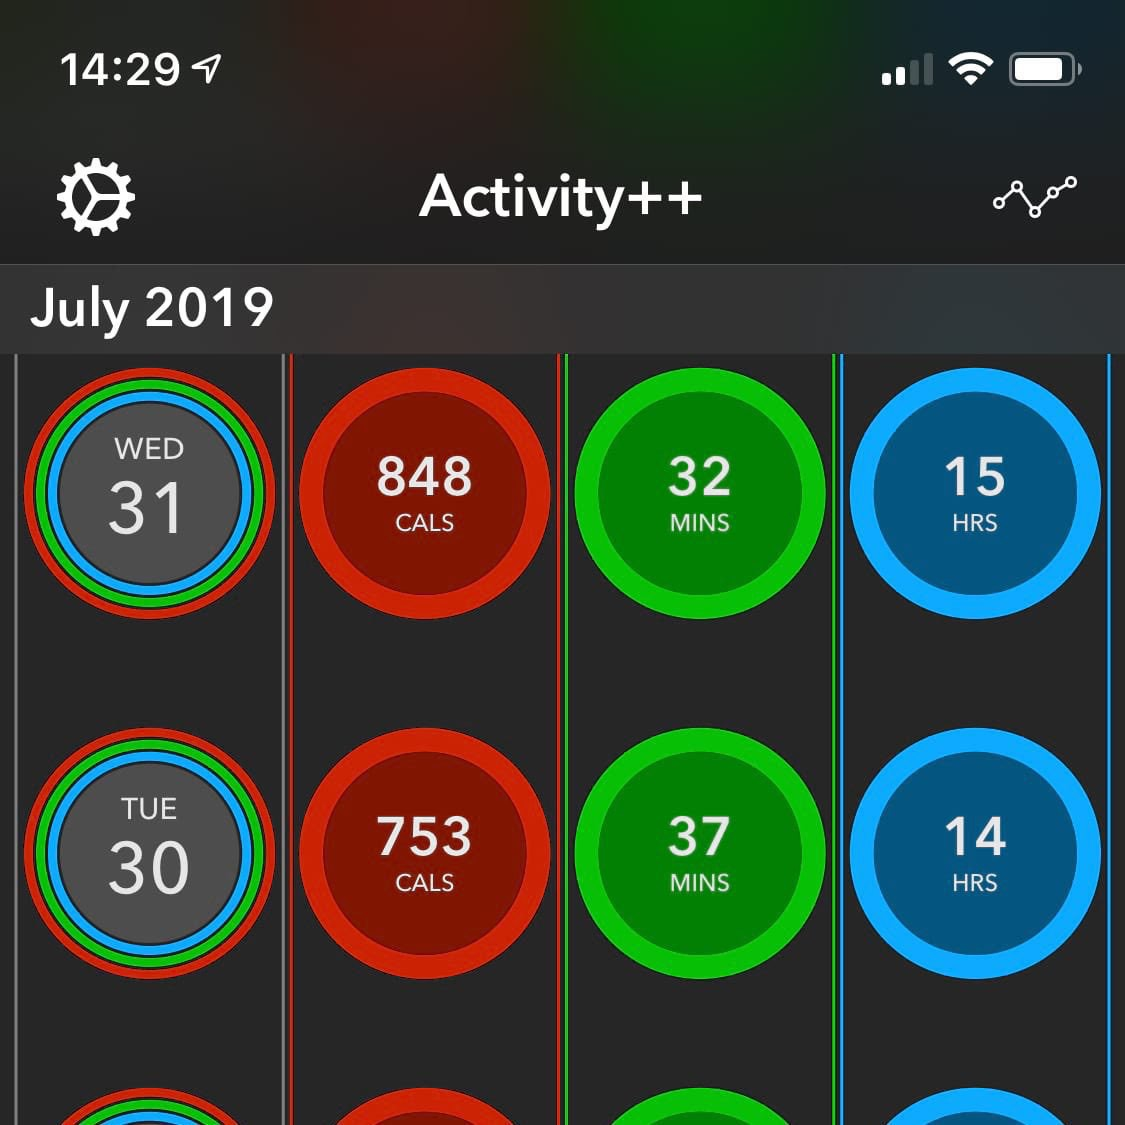 Showing activity rings in Activity++